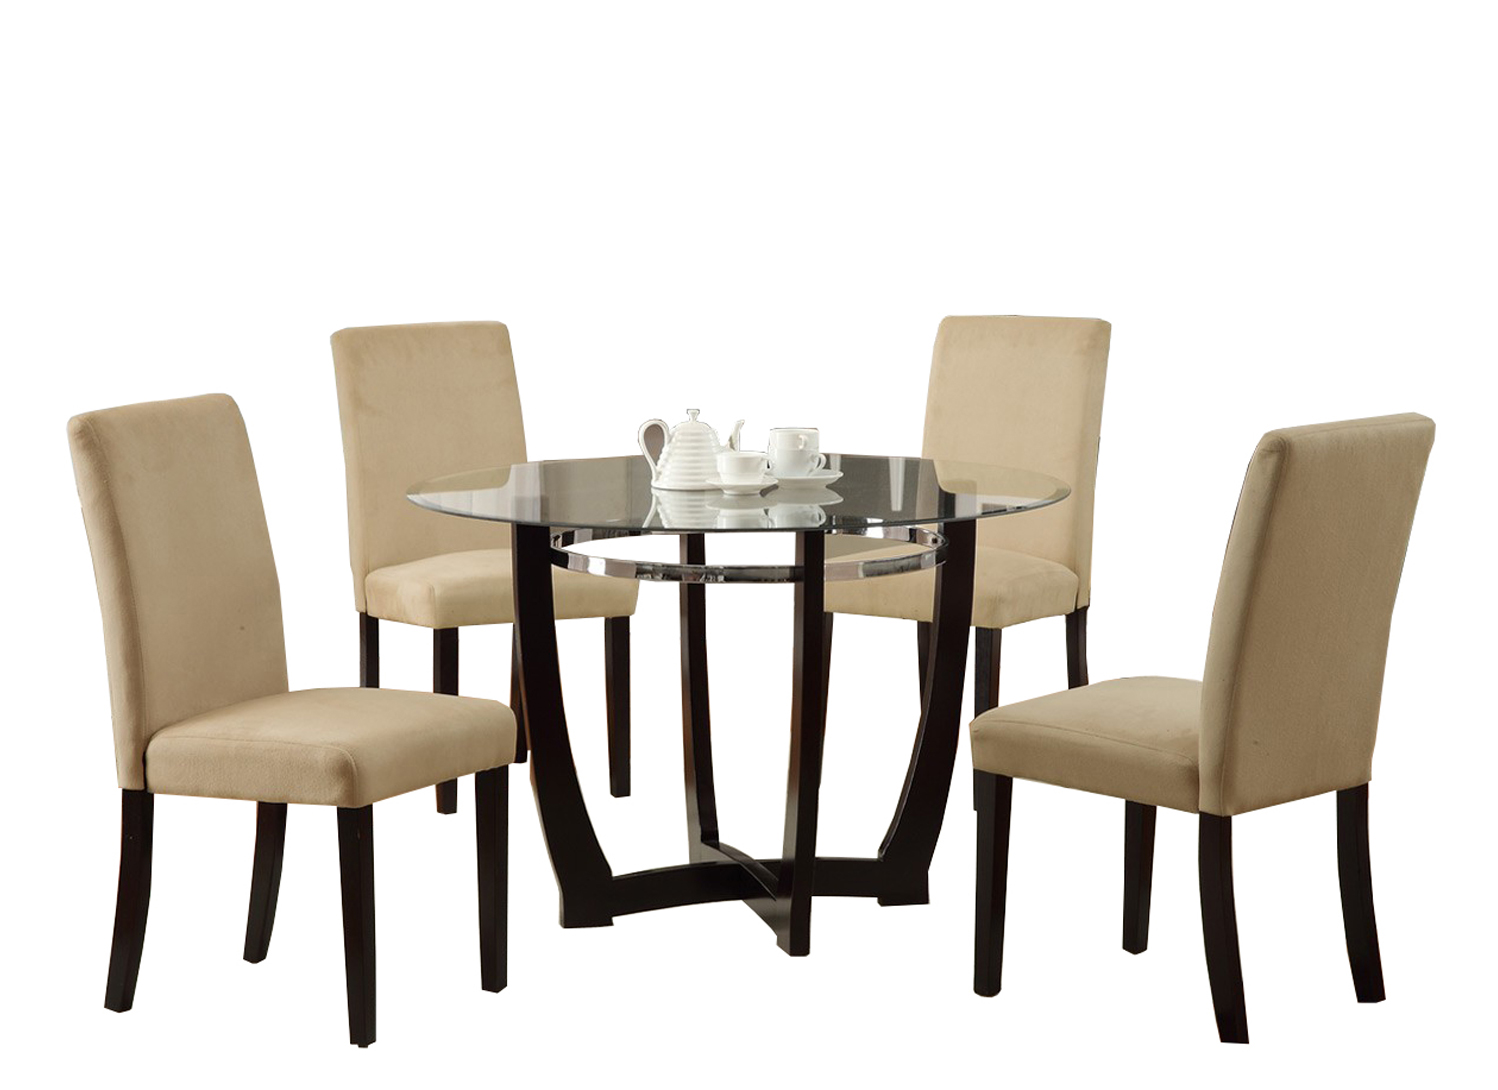 Hotel furniture manufacturers home restaurant